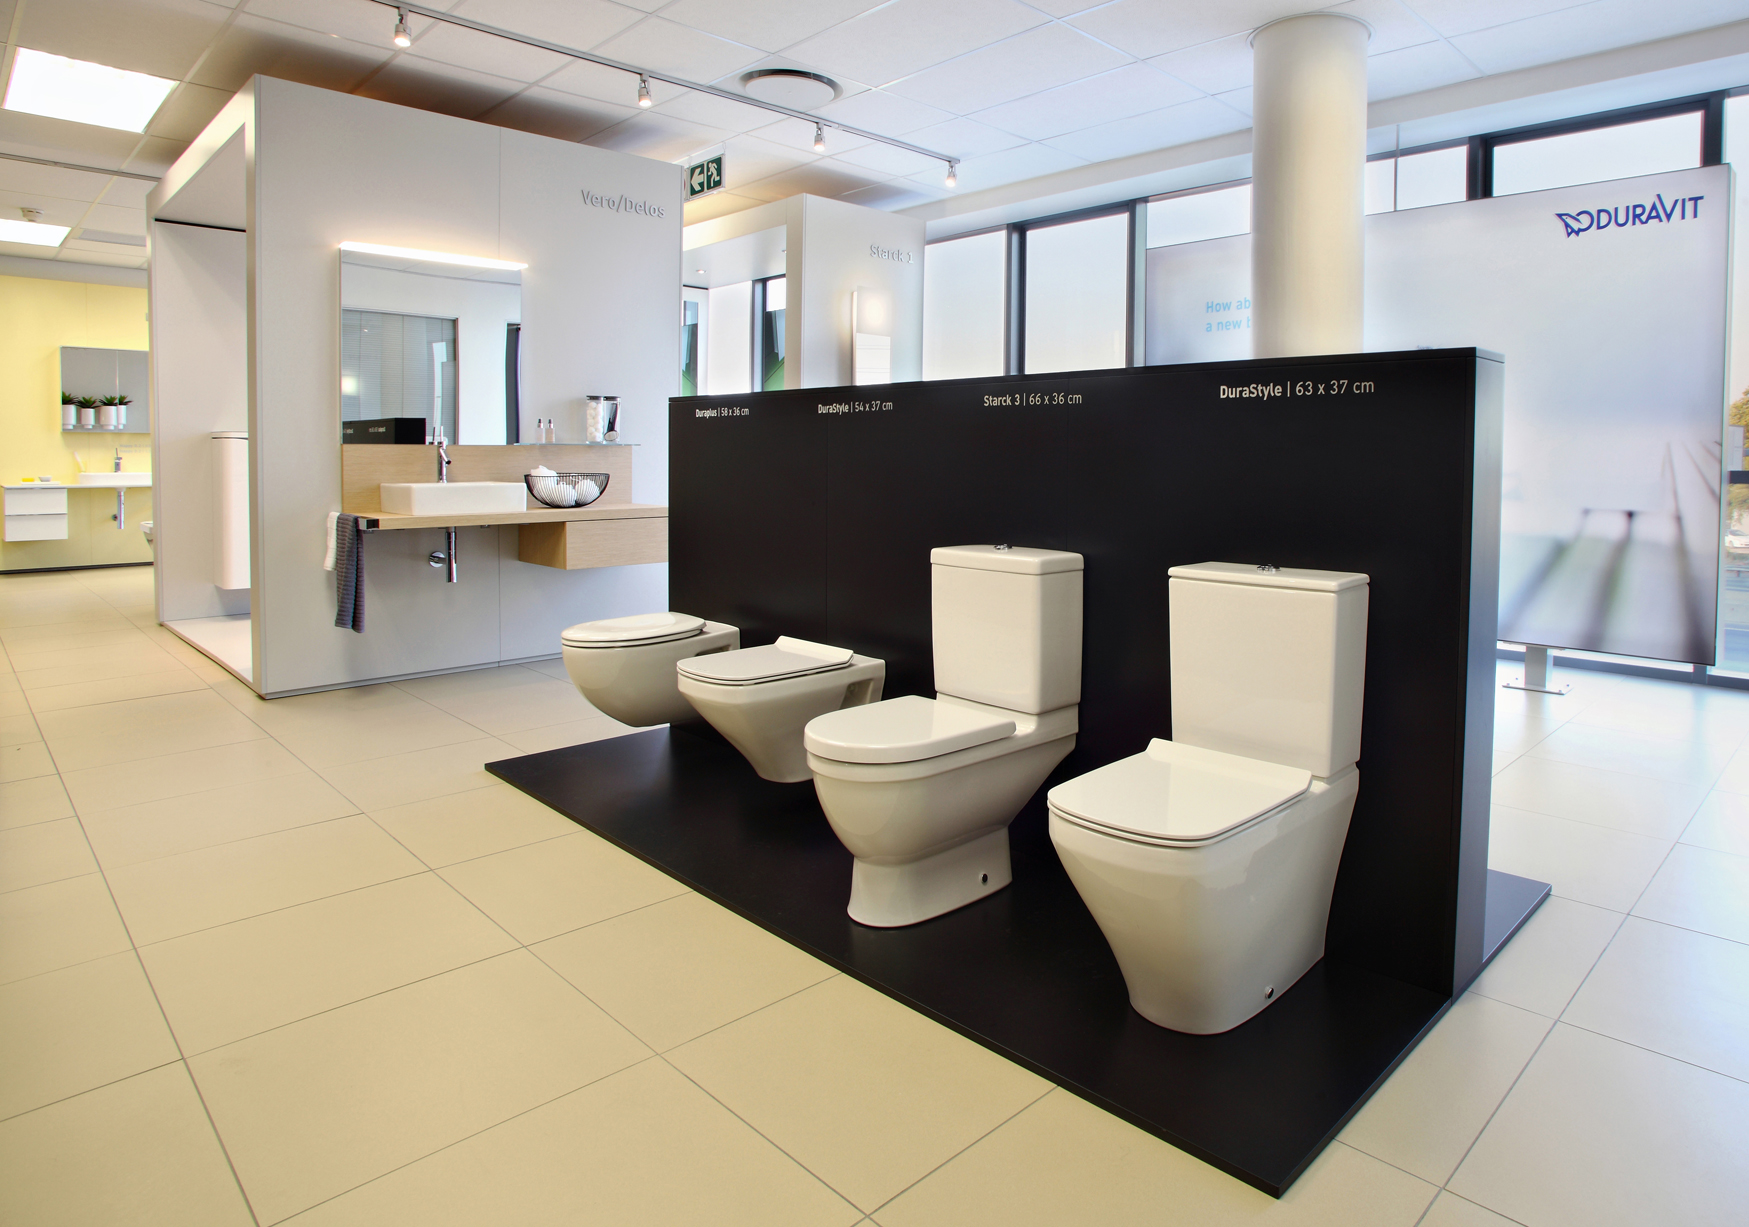 10_duravit_training_center_south_africa.jpg